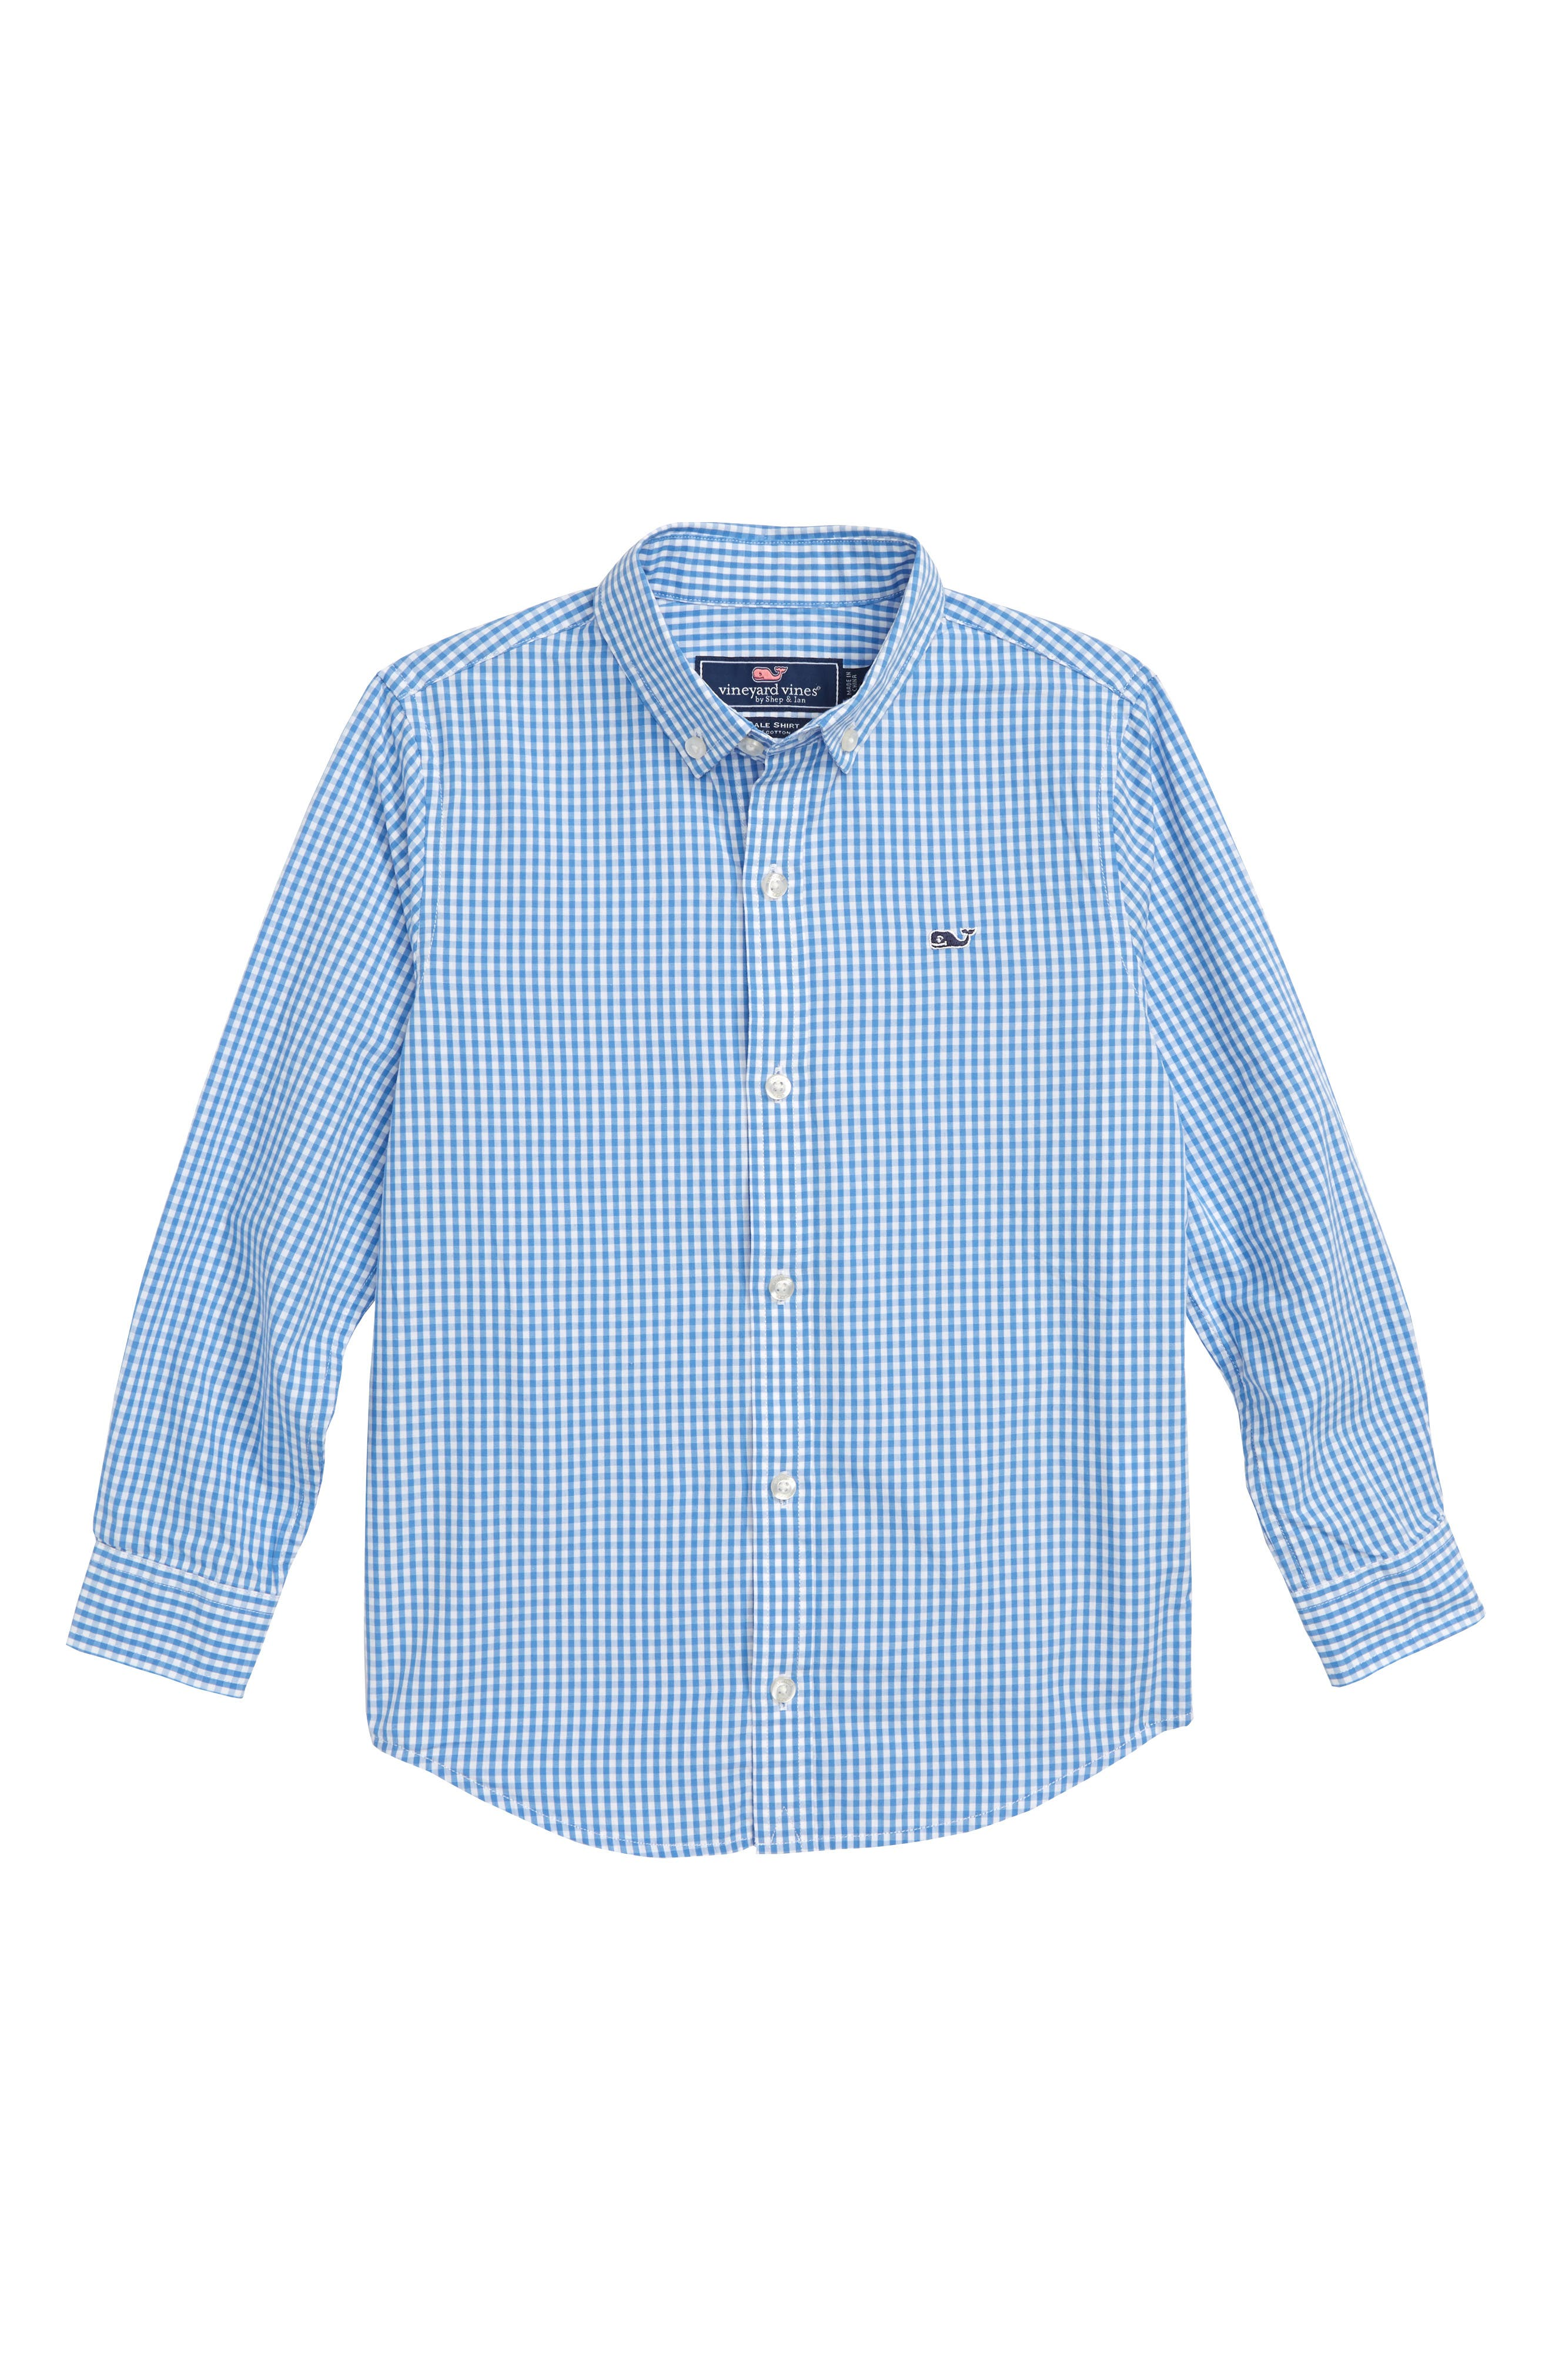 Classic Gingham Whale Shirt,                             Main thumbnail 1, color,                             HYDRANGEA